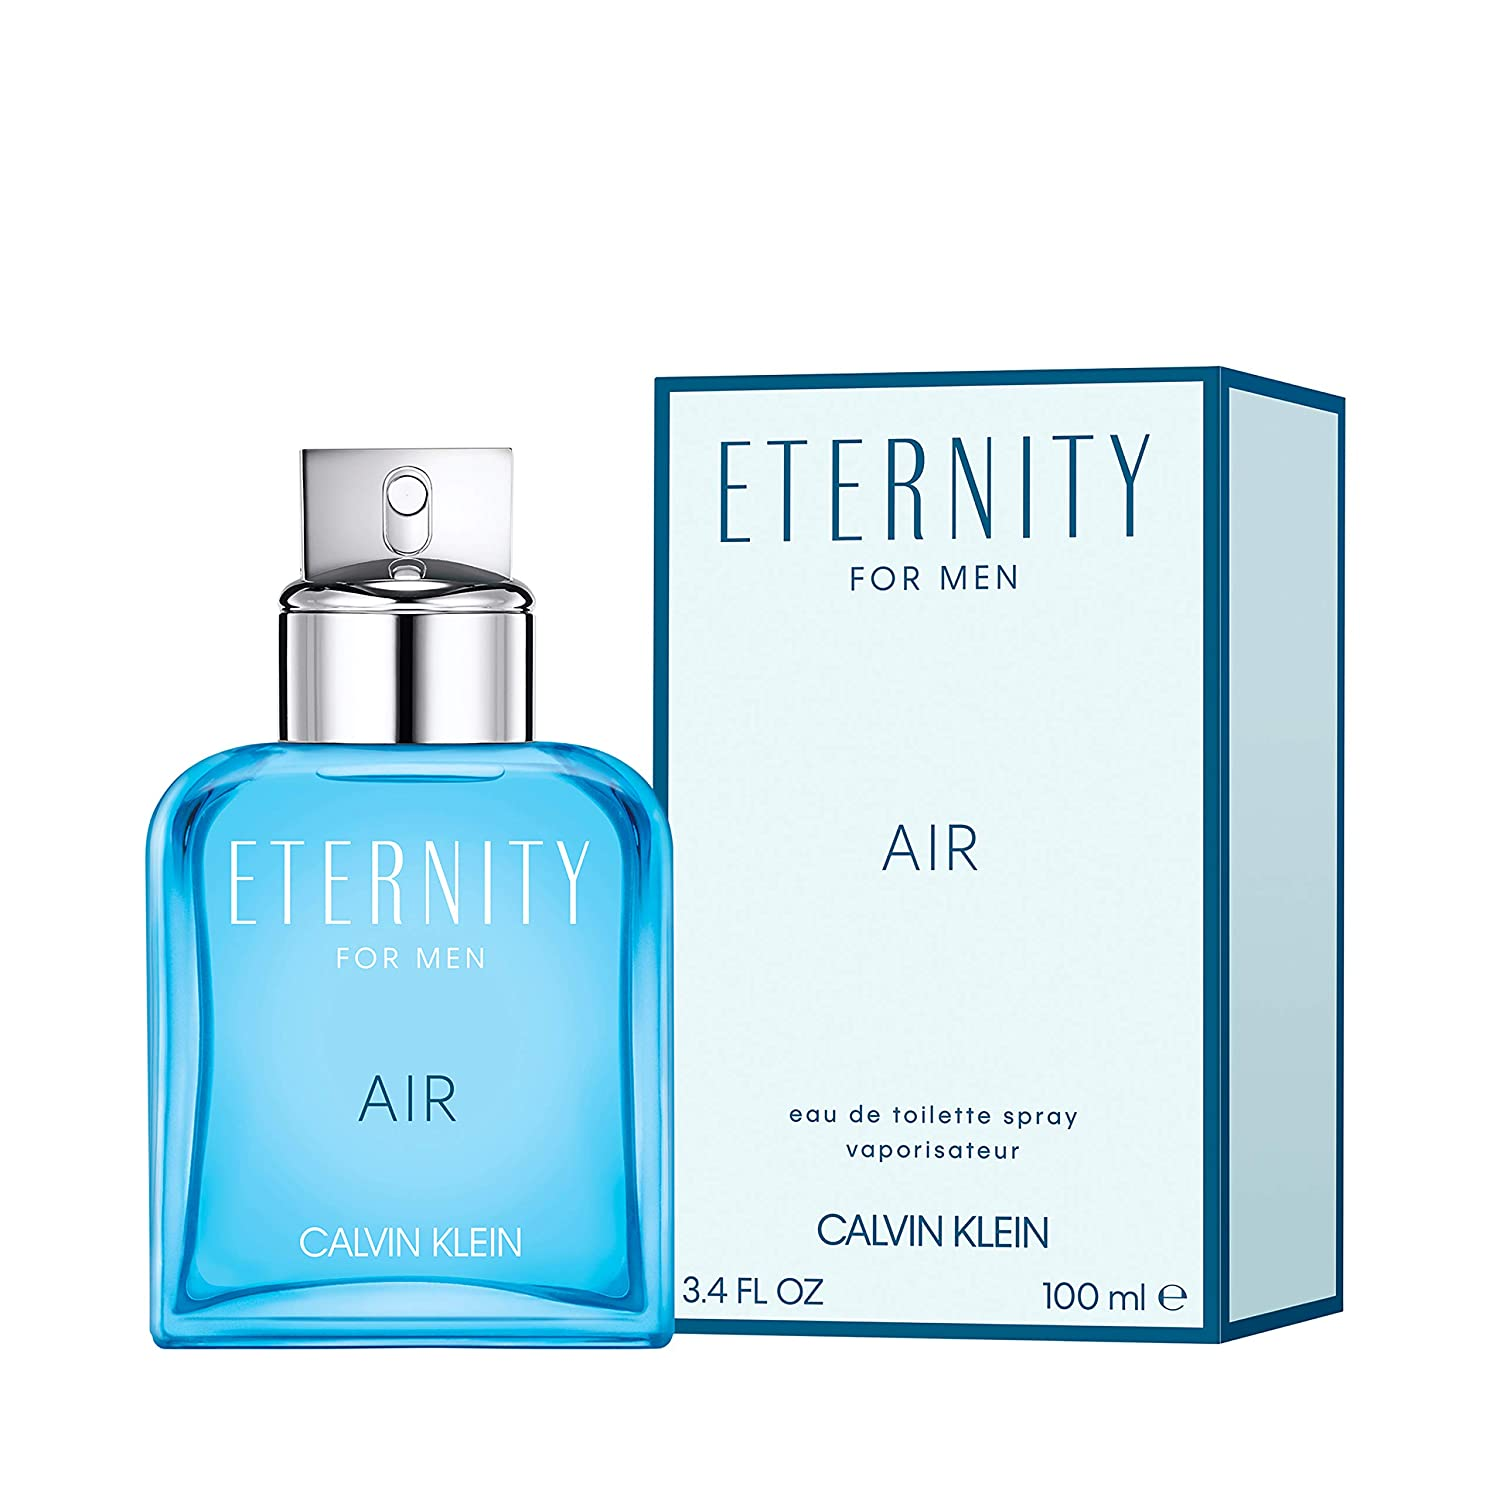 a2f0db1c24c Calvin Klein Eternity Air Eau de Toilette For Man, 100ml: Amazon.in: Beauty